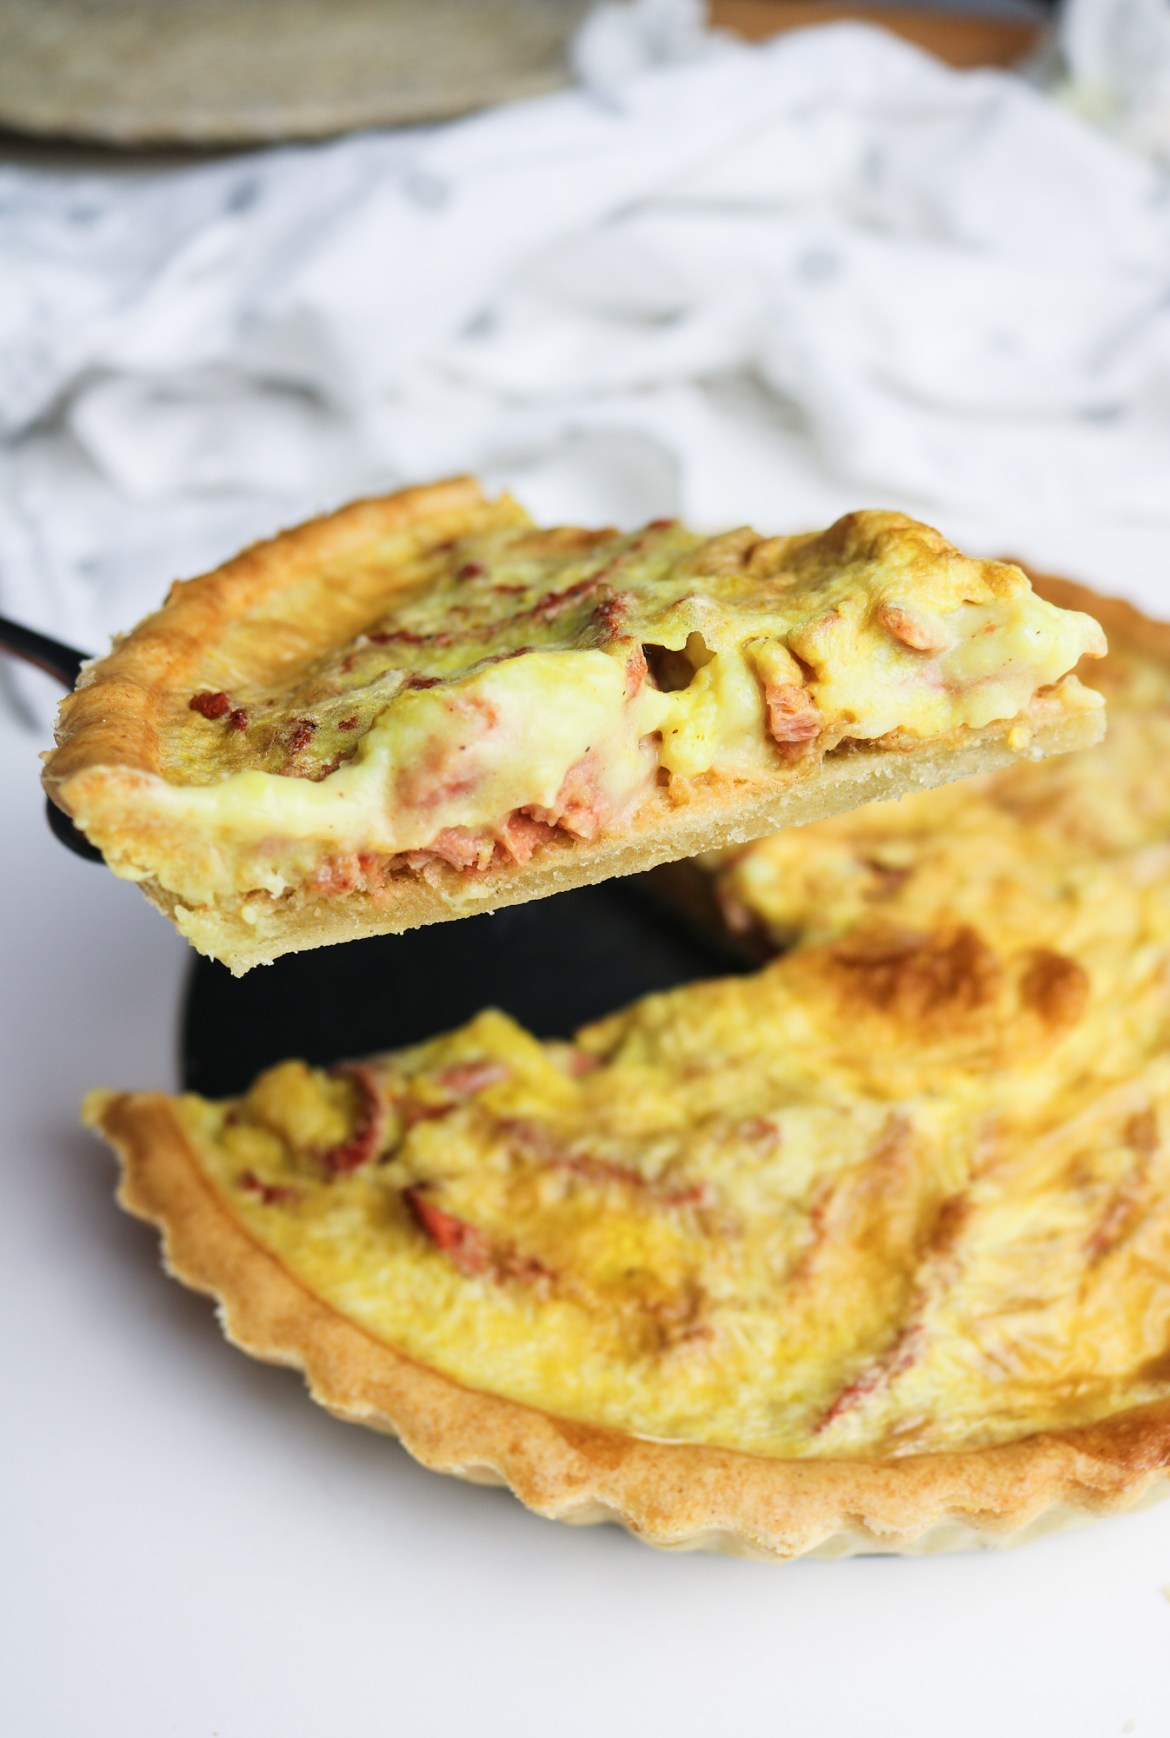 Vegan Quiche Lorraine Closed Up Slice